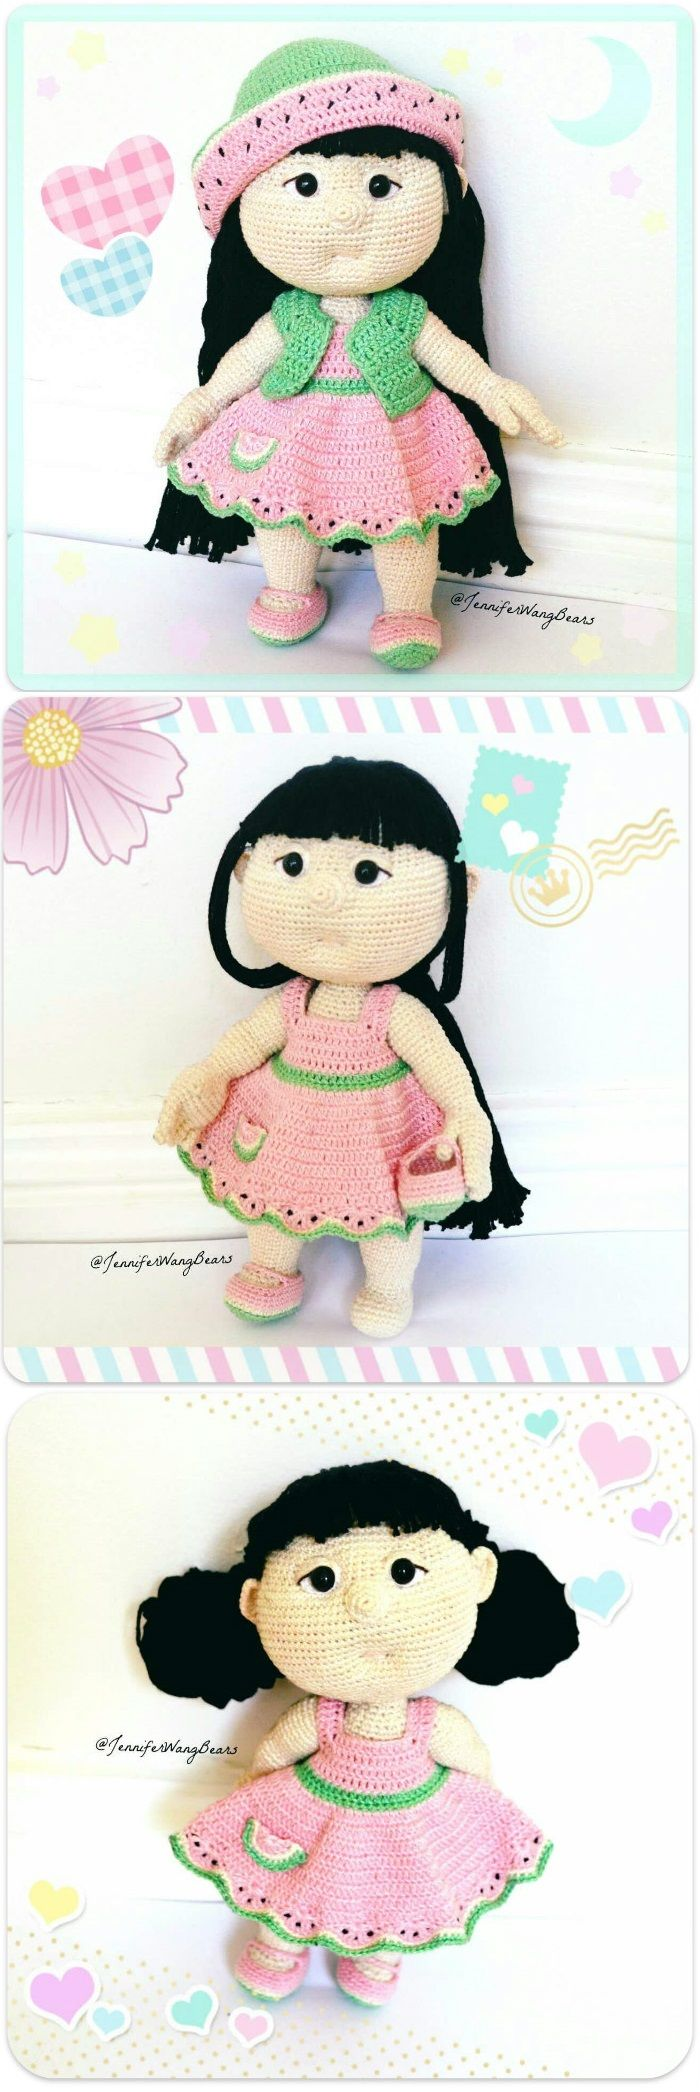 "心甜 Xintian (Sweetheart) crochet doll by Jennifer Wang Bears. Original Pattern ""Mia Doll Inspired Watermelon"" by Havva Designs"